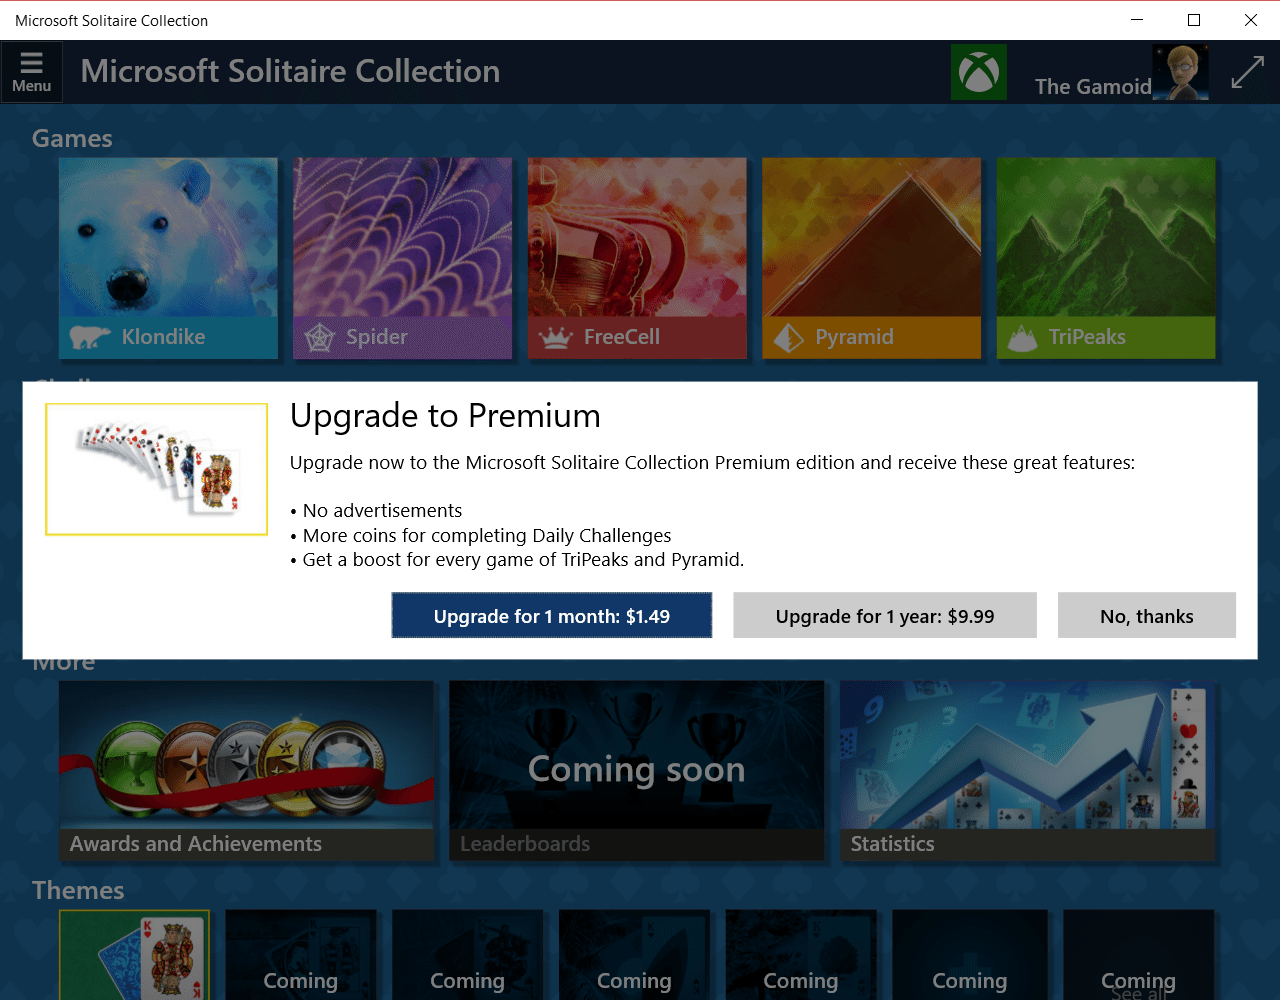 microsoft solitaire collection 7_27_2015 12_24_07 pm